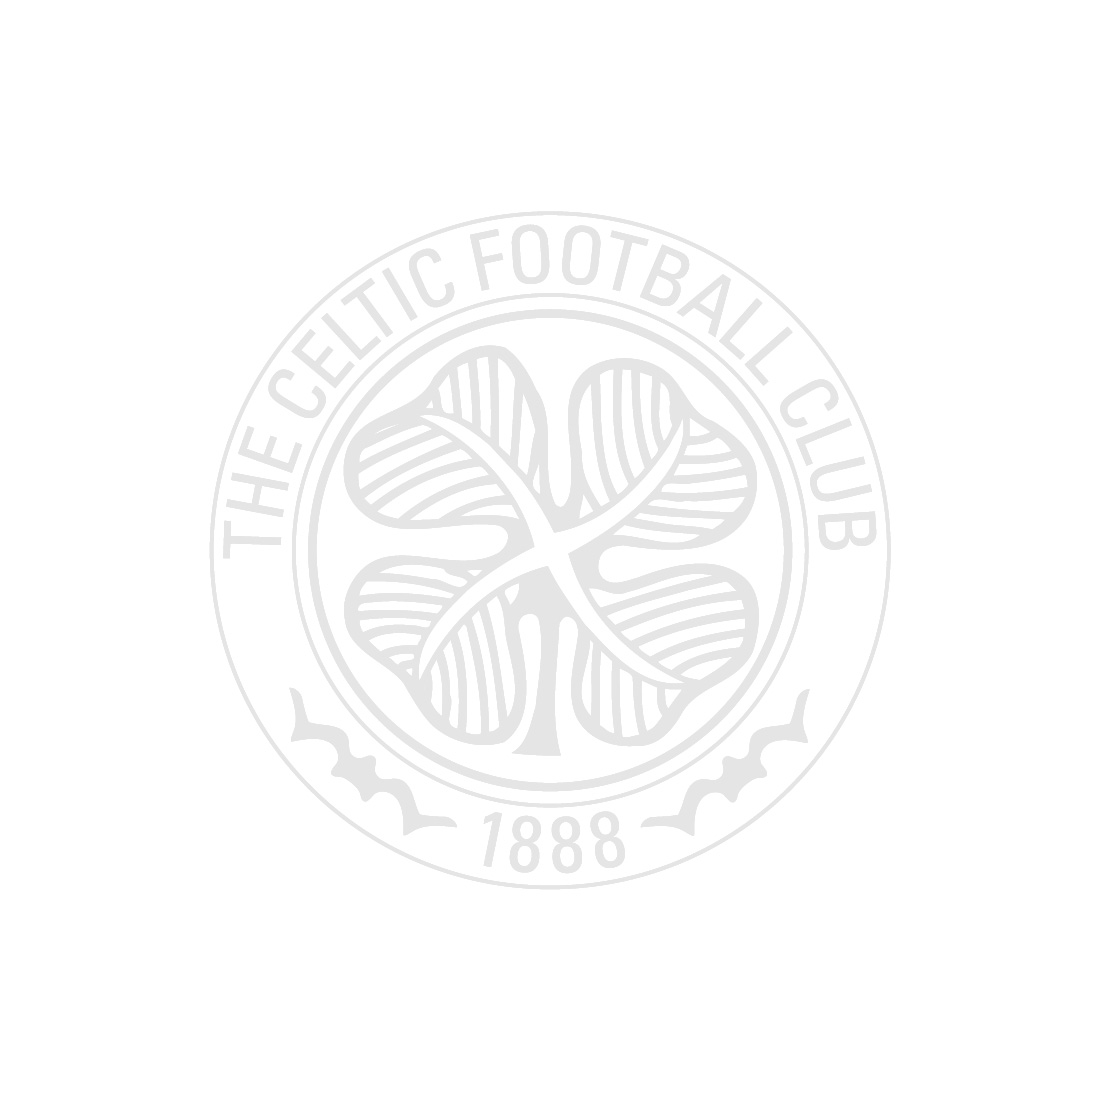 Jim Craig Right Back To 67 - The Lisbon Lion Diary